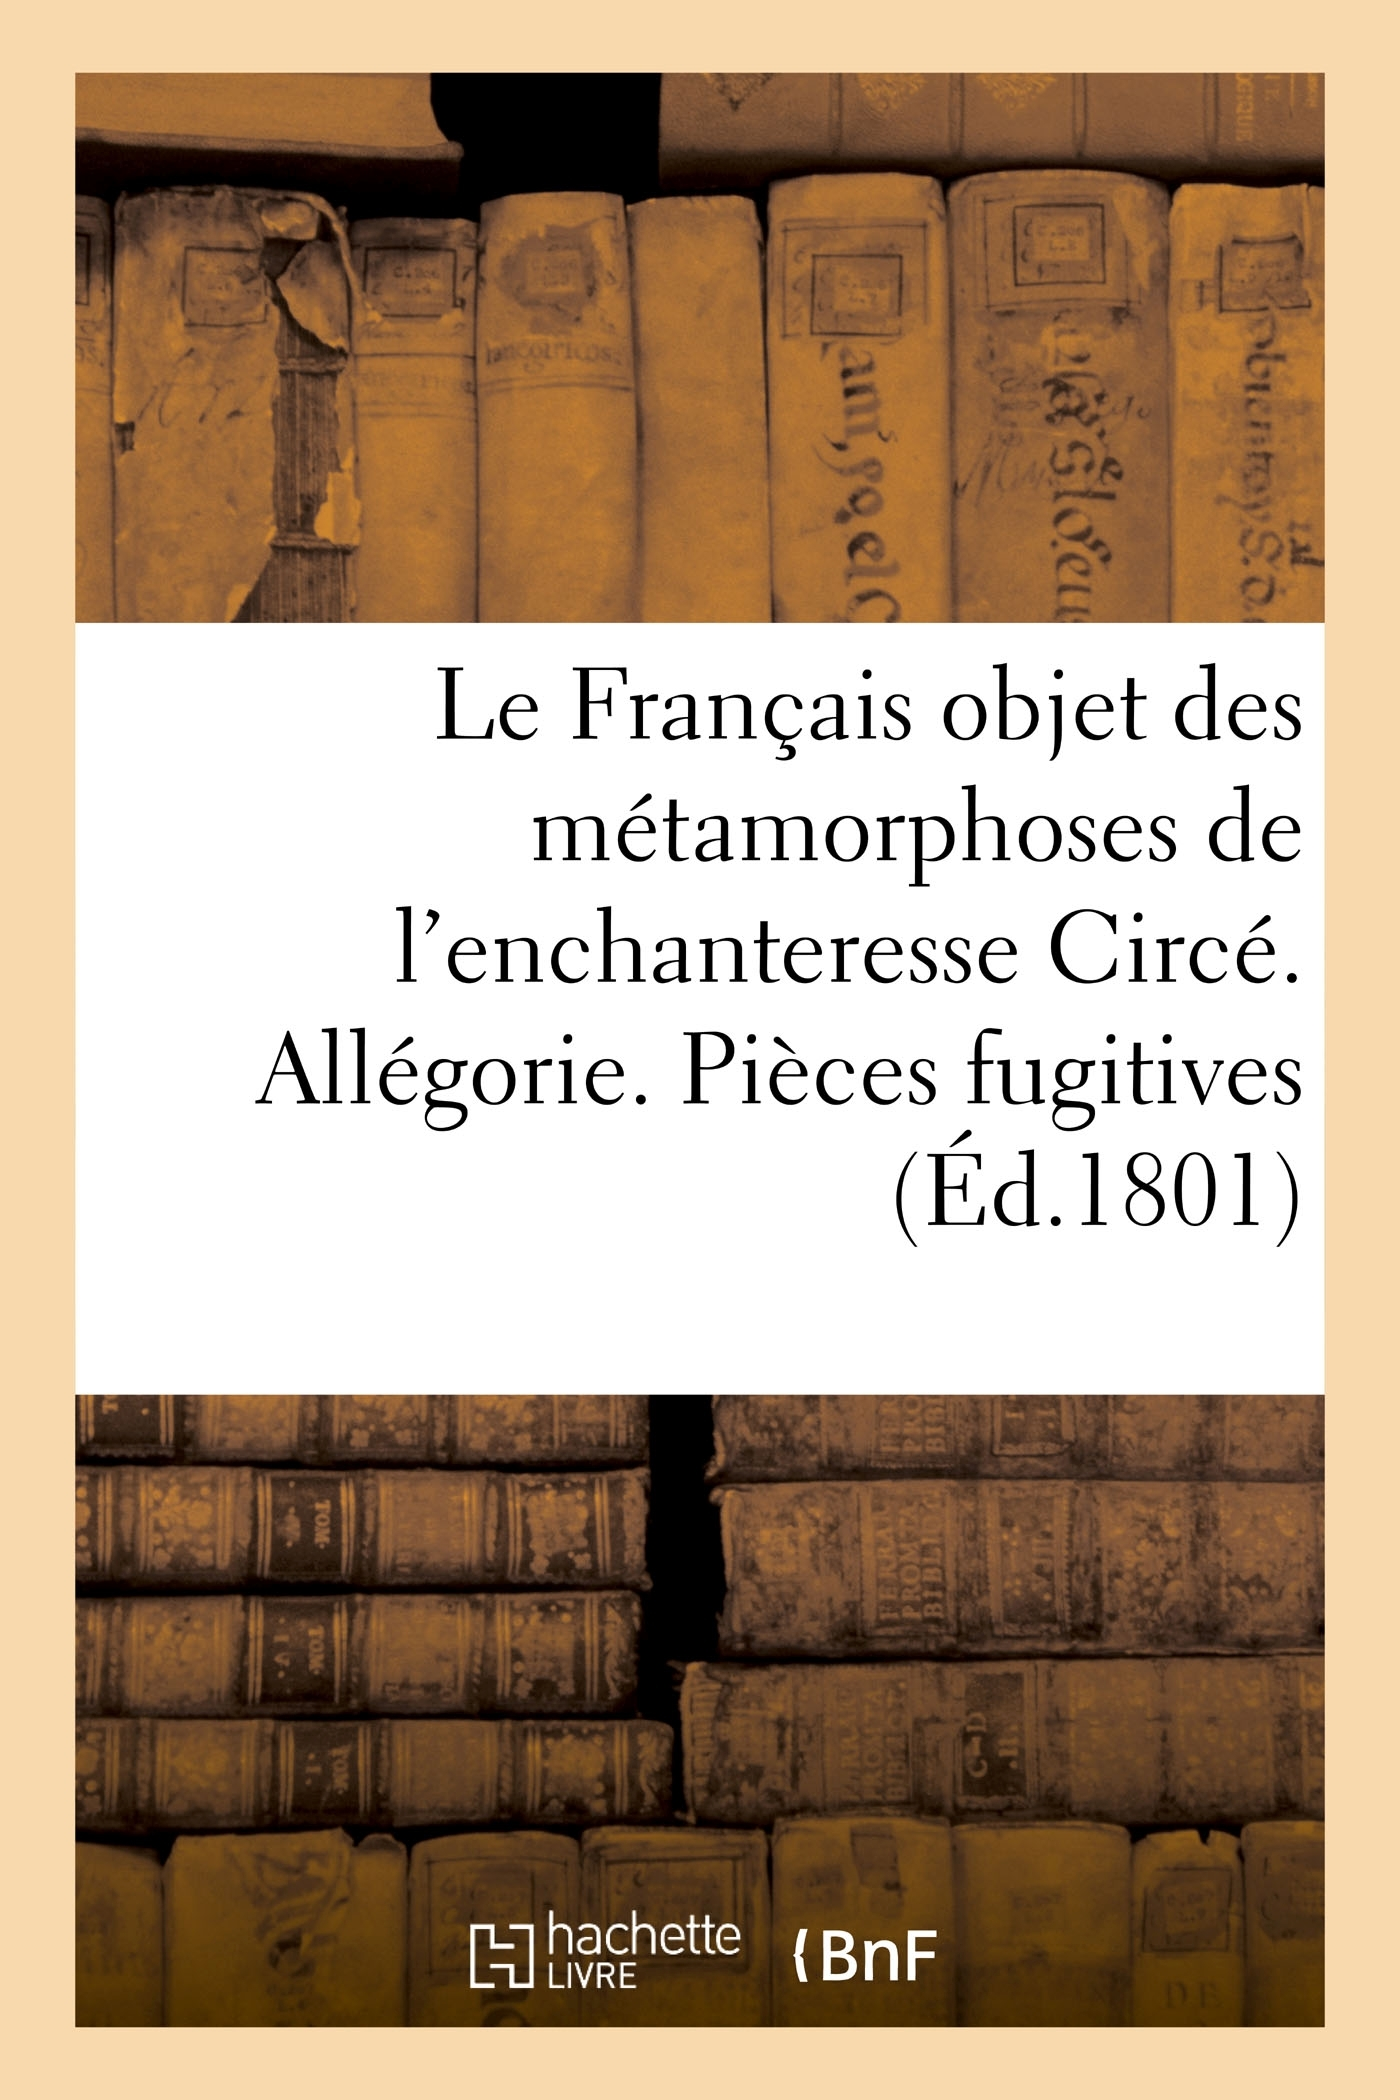 LE FRANCAIS OBJET DES METAMORPHOSES DE L'ENCHANTERESSE CIRCE. ALLEGORIE. PIECES FUGITIVES